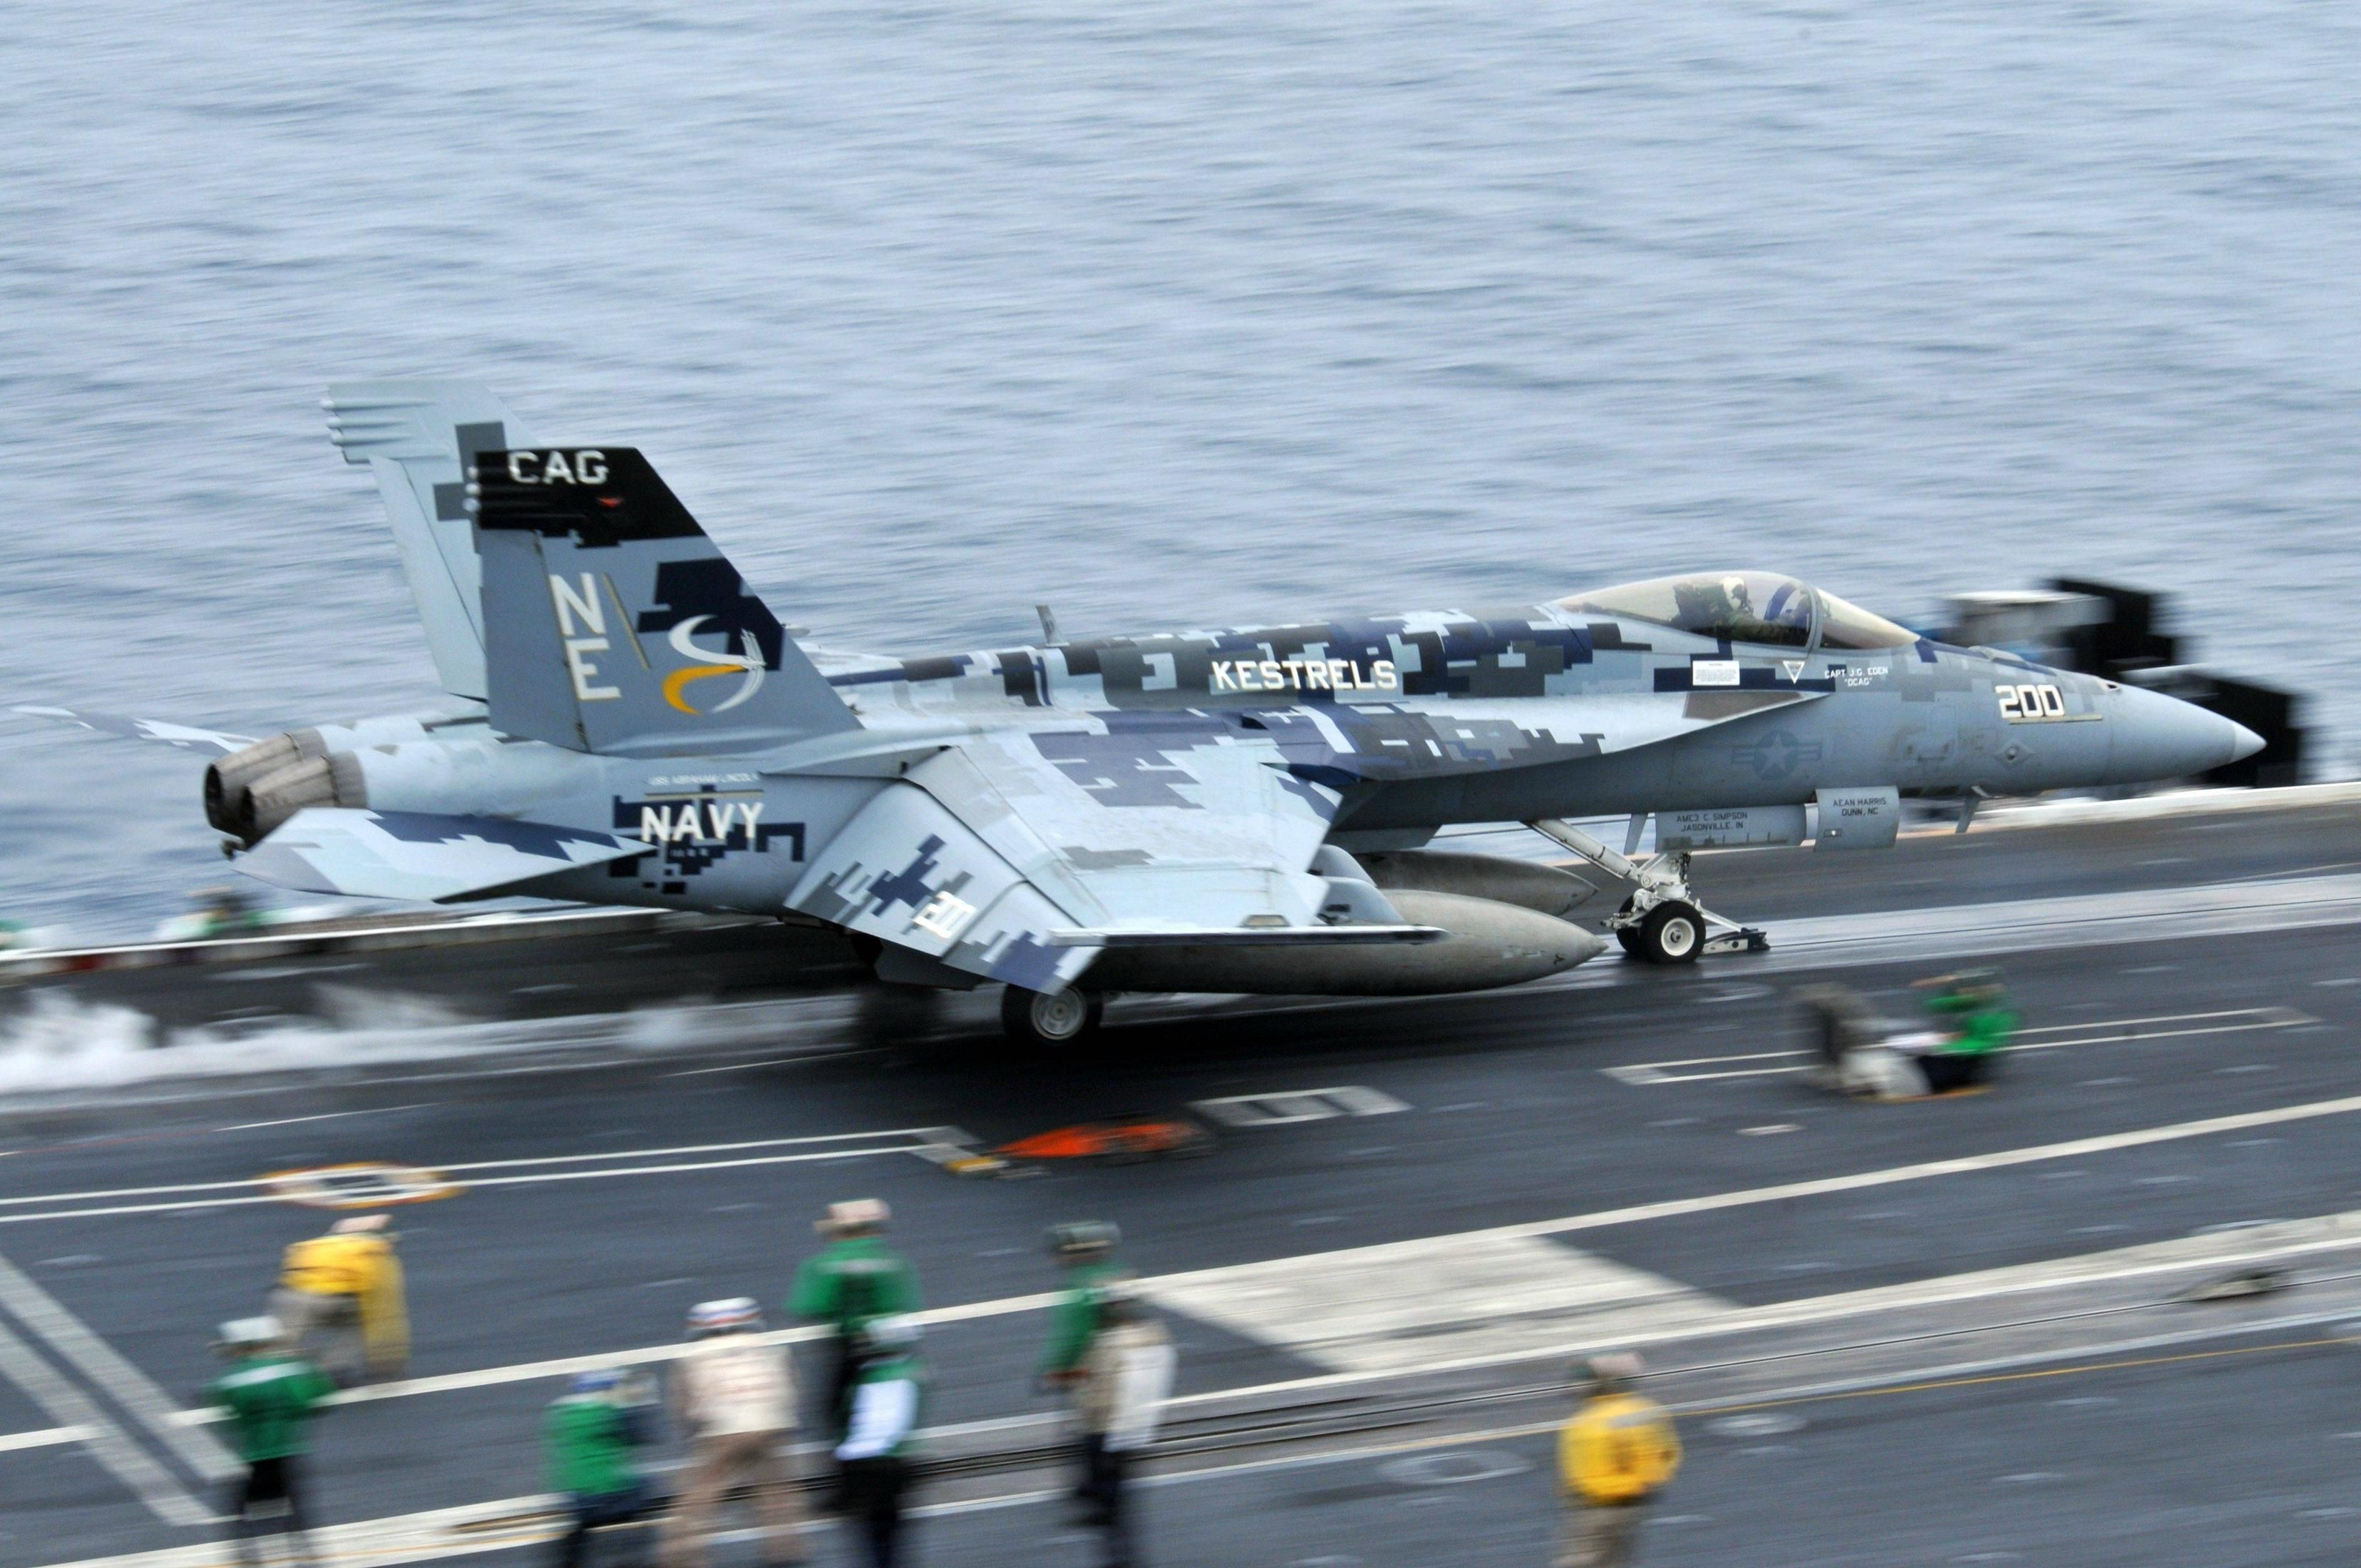 Another cool Super Hornet camo scheme.